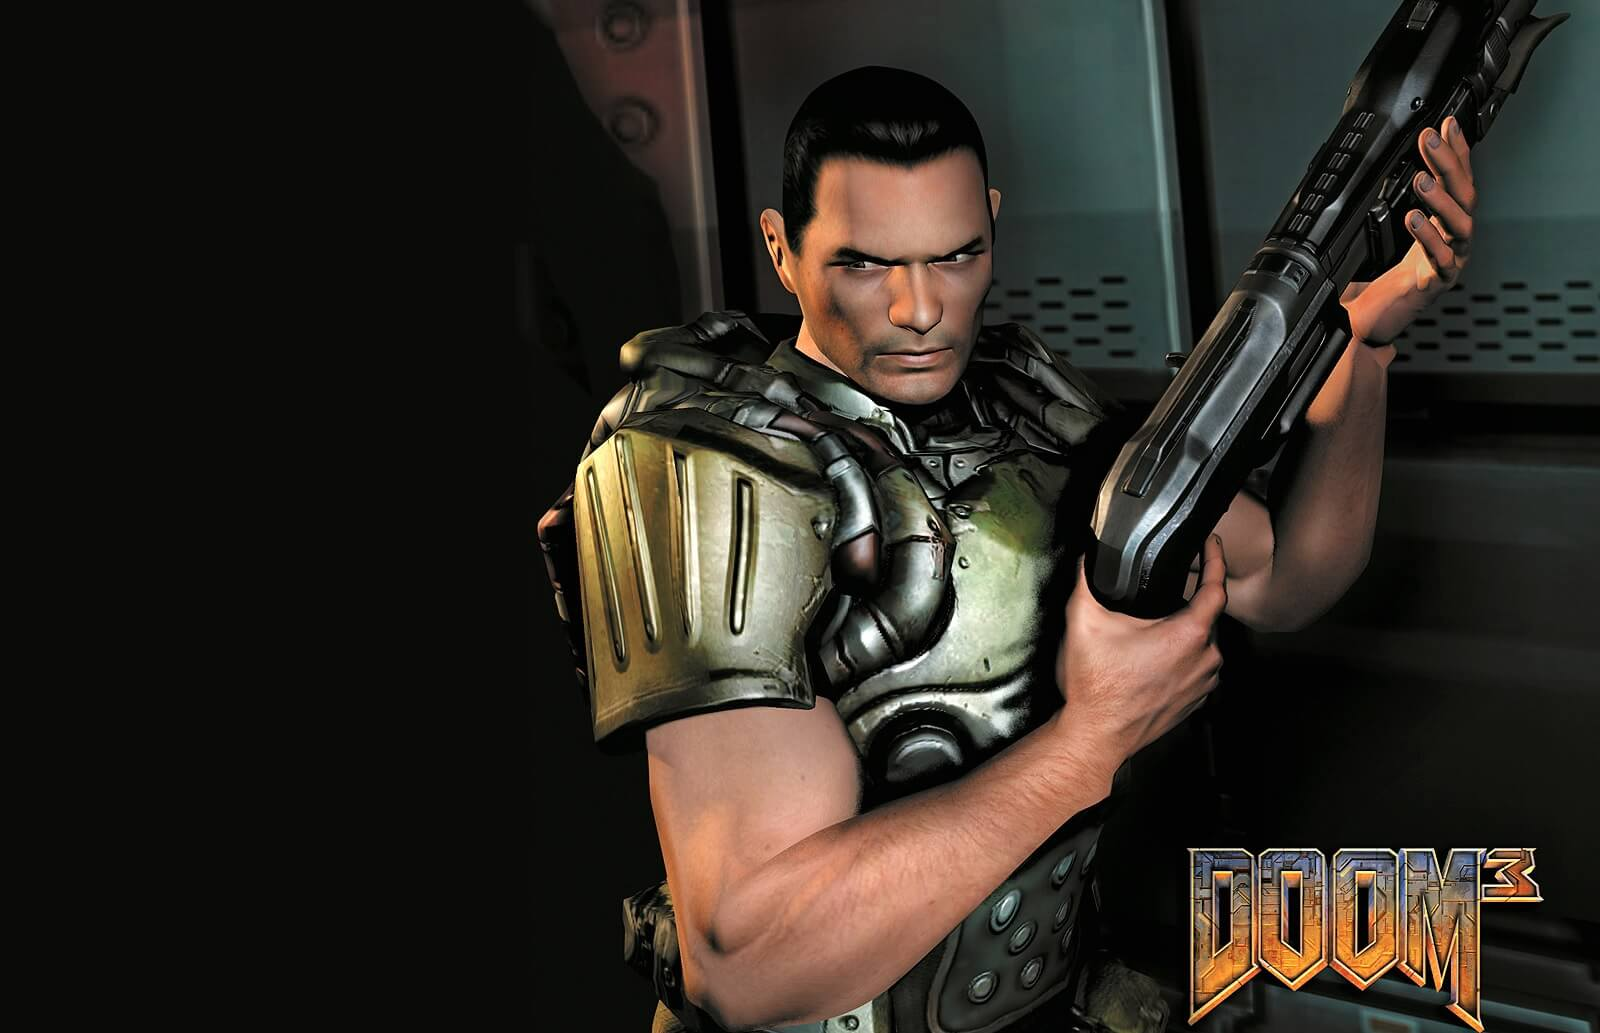 You can now play Doom 3 in third-person mode with the HUD enabled